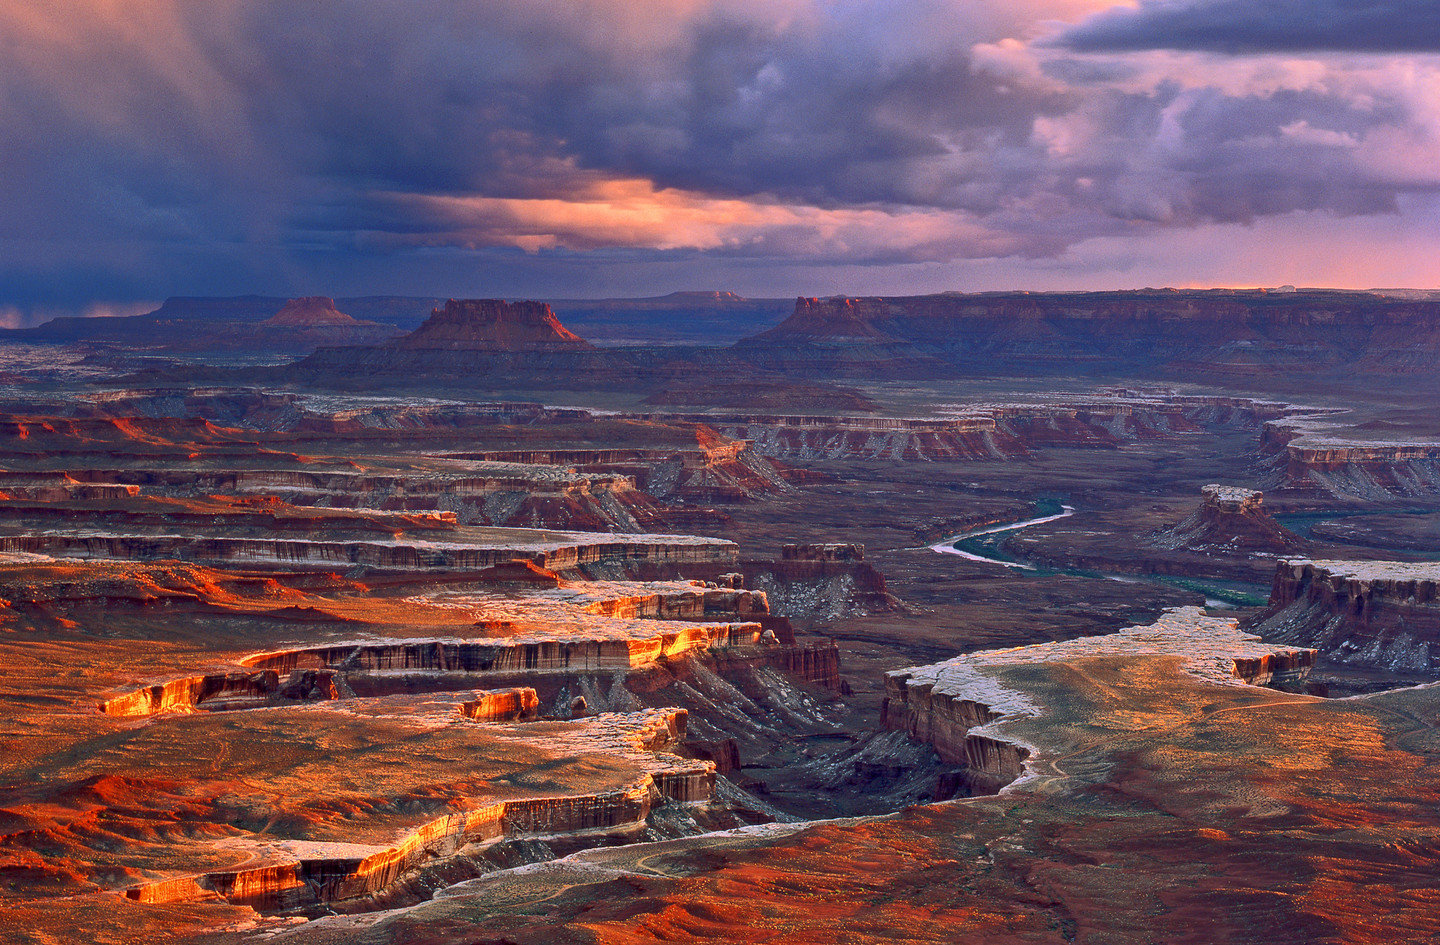 Countryside landscape national park Natural wonders Nature Offbeat Scenic views western valley canyon sky outdoor mountain landform geographical feature sunrise Sunset dawn cloud morning evening aerial photography dusk rock badlands clouds reflection butte plateau geology cloudy